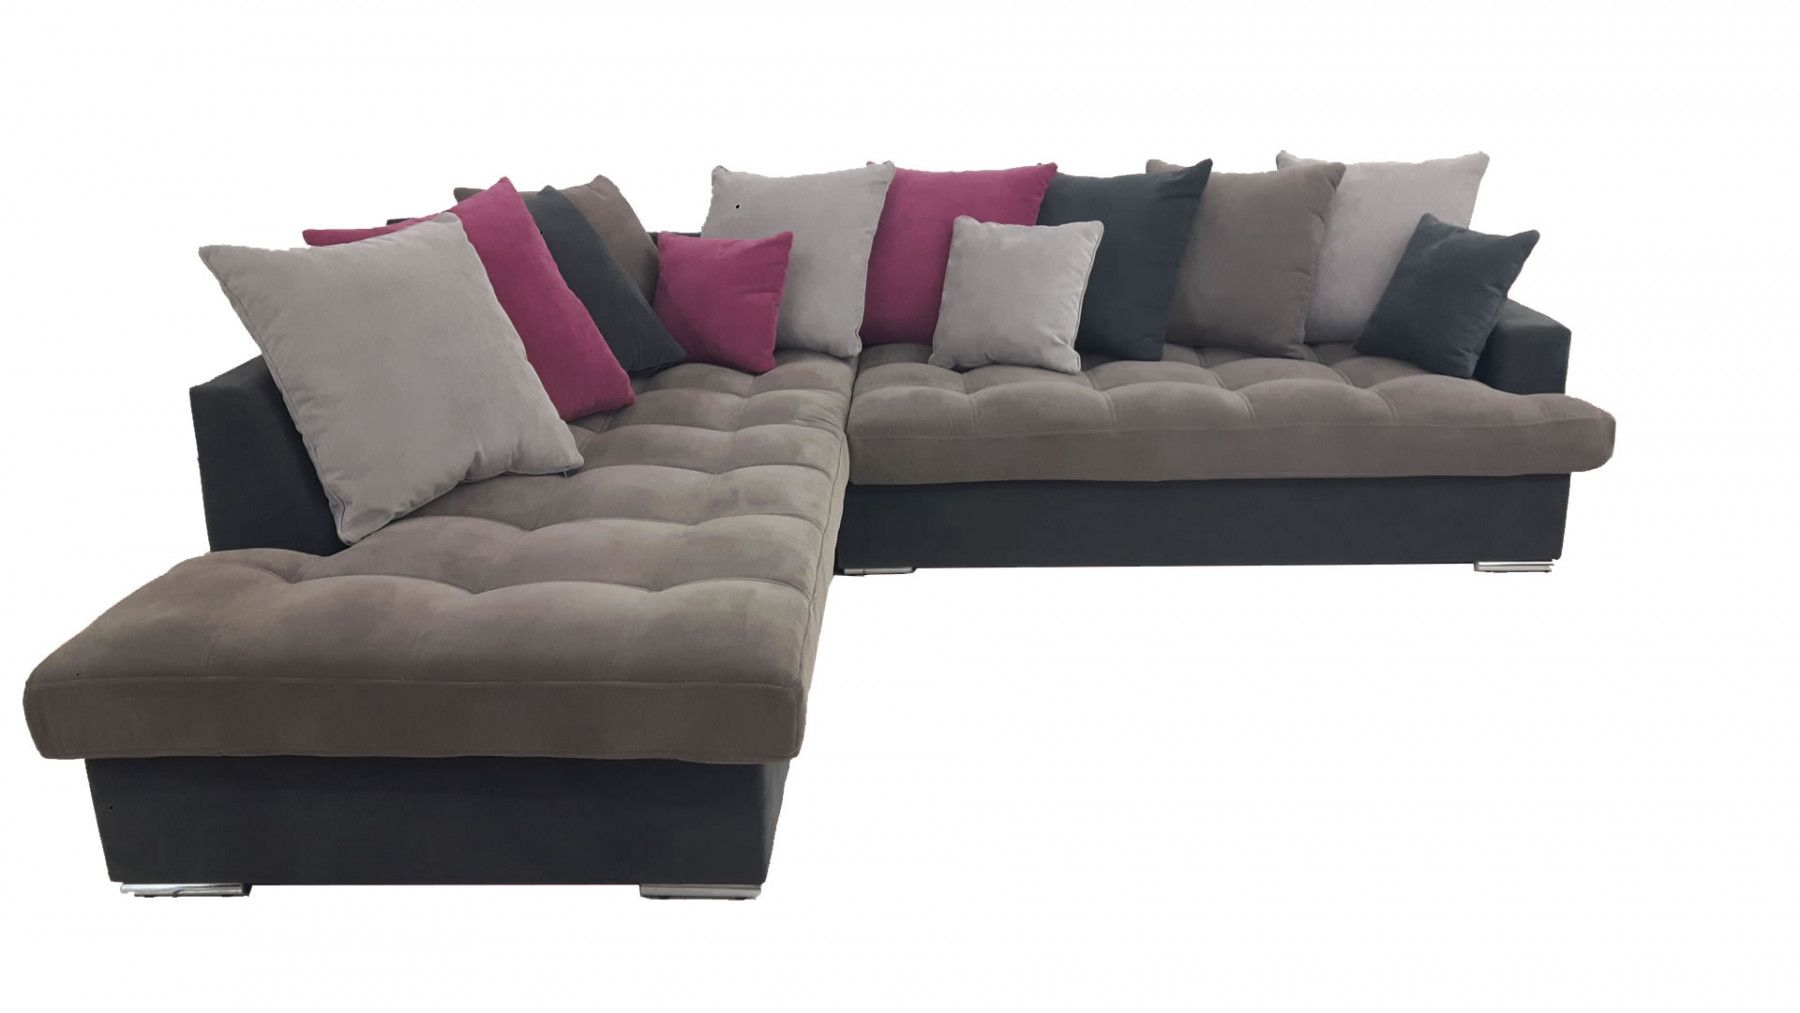 canap d 39 angle gauche linda gris et fushia. Black Bedroom Furniture Sets. Home Design Ideas